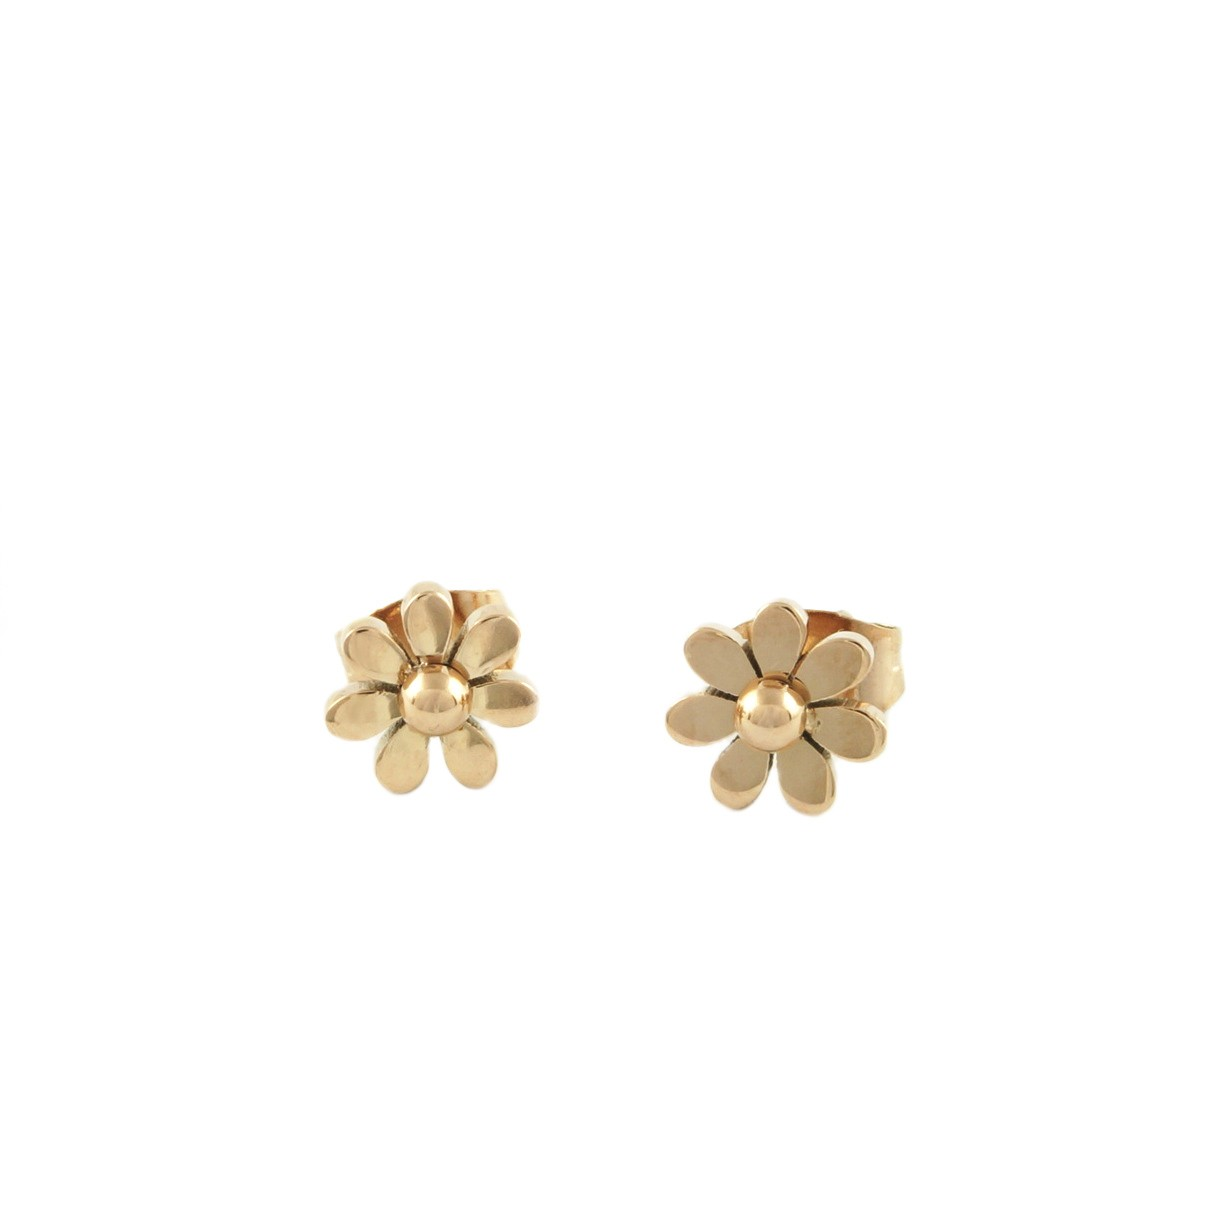 Dainty Flower Studs Earrings | Gold plated on Titanium